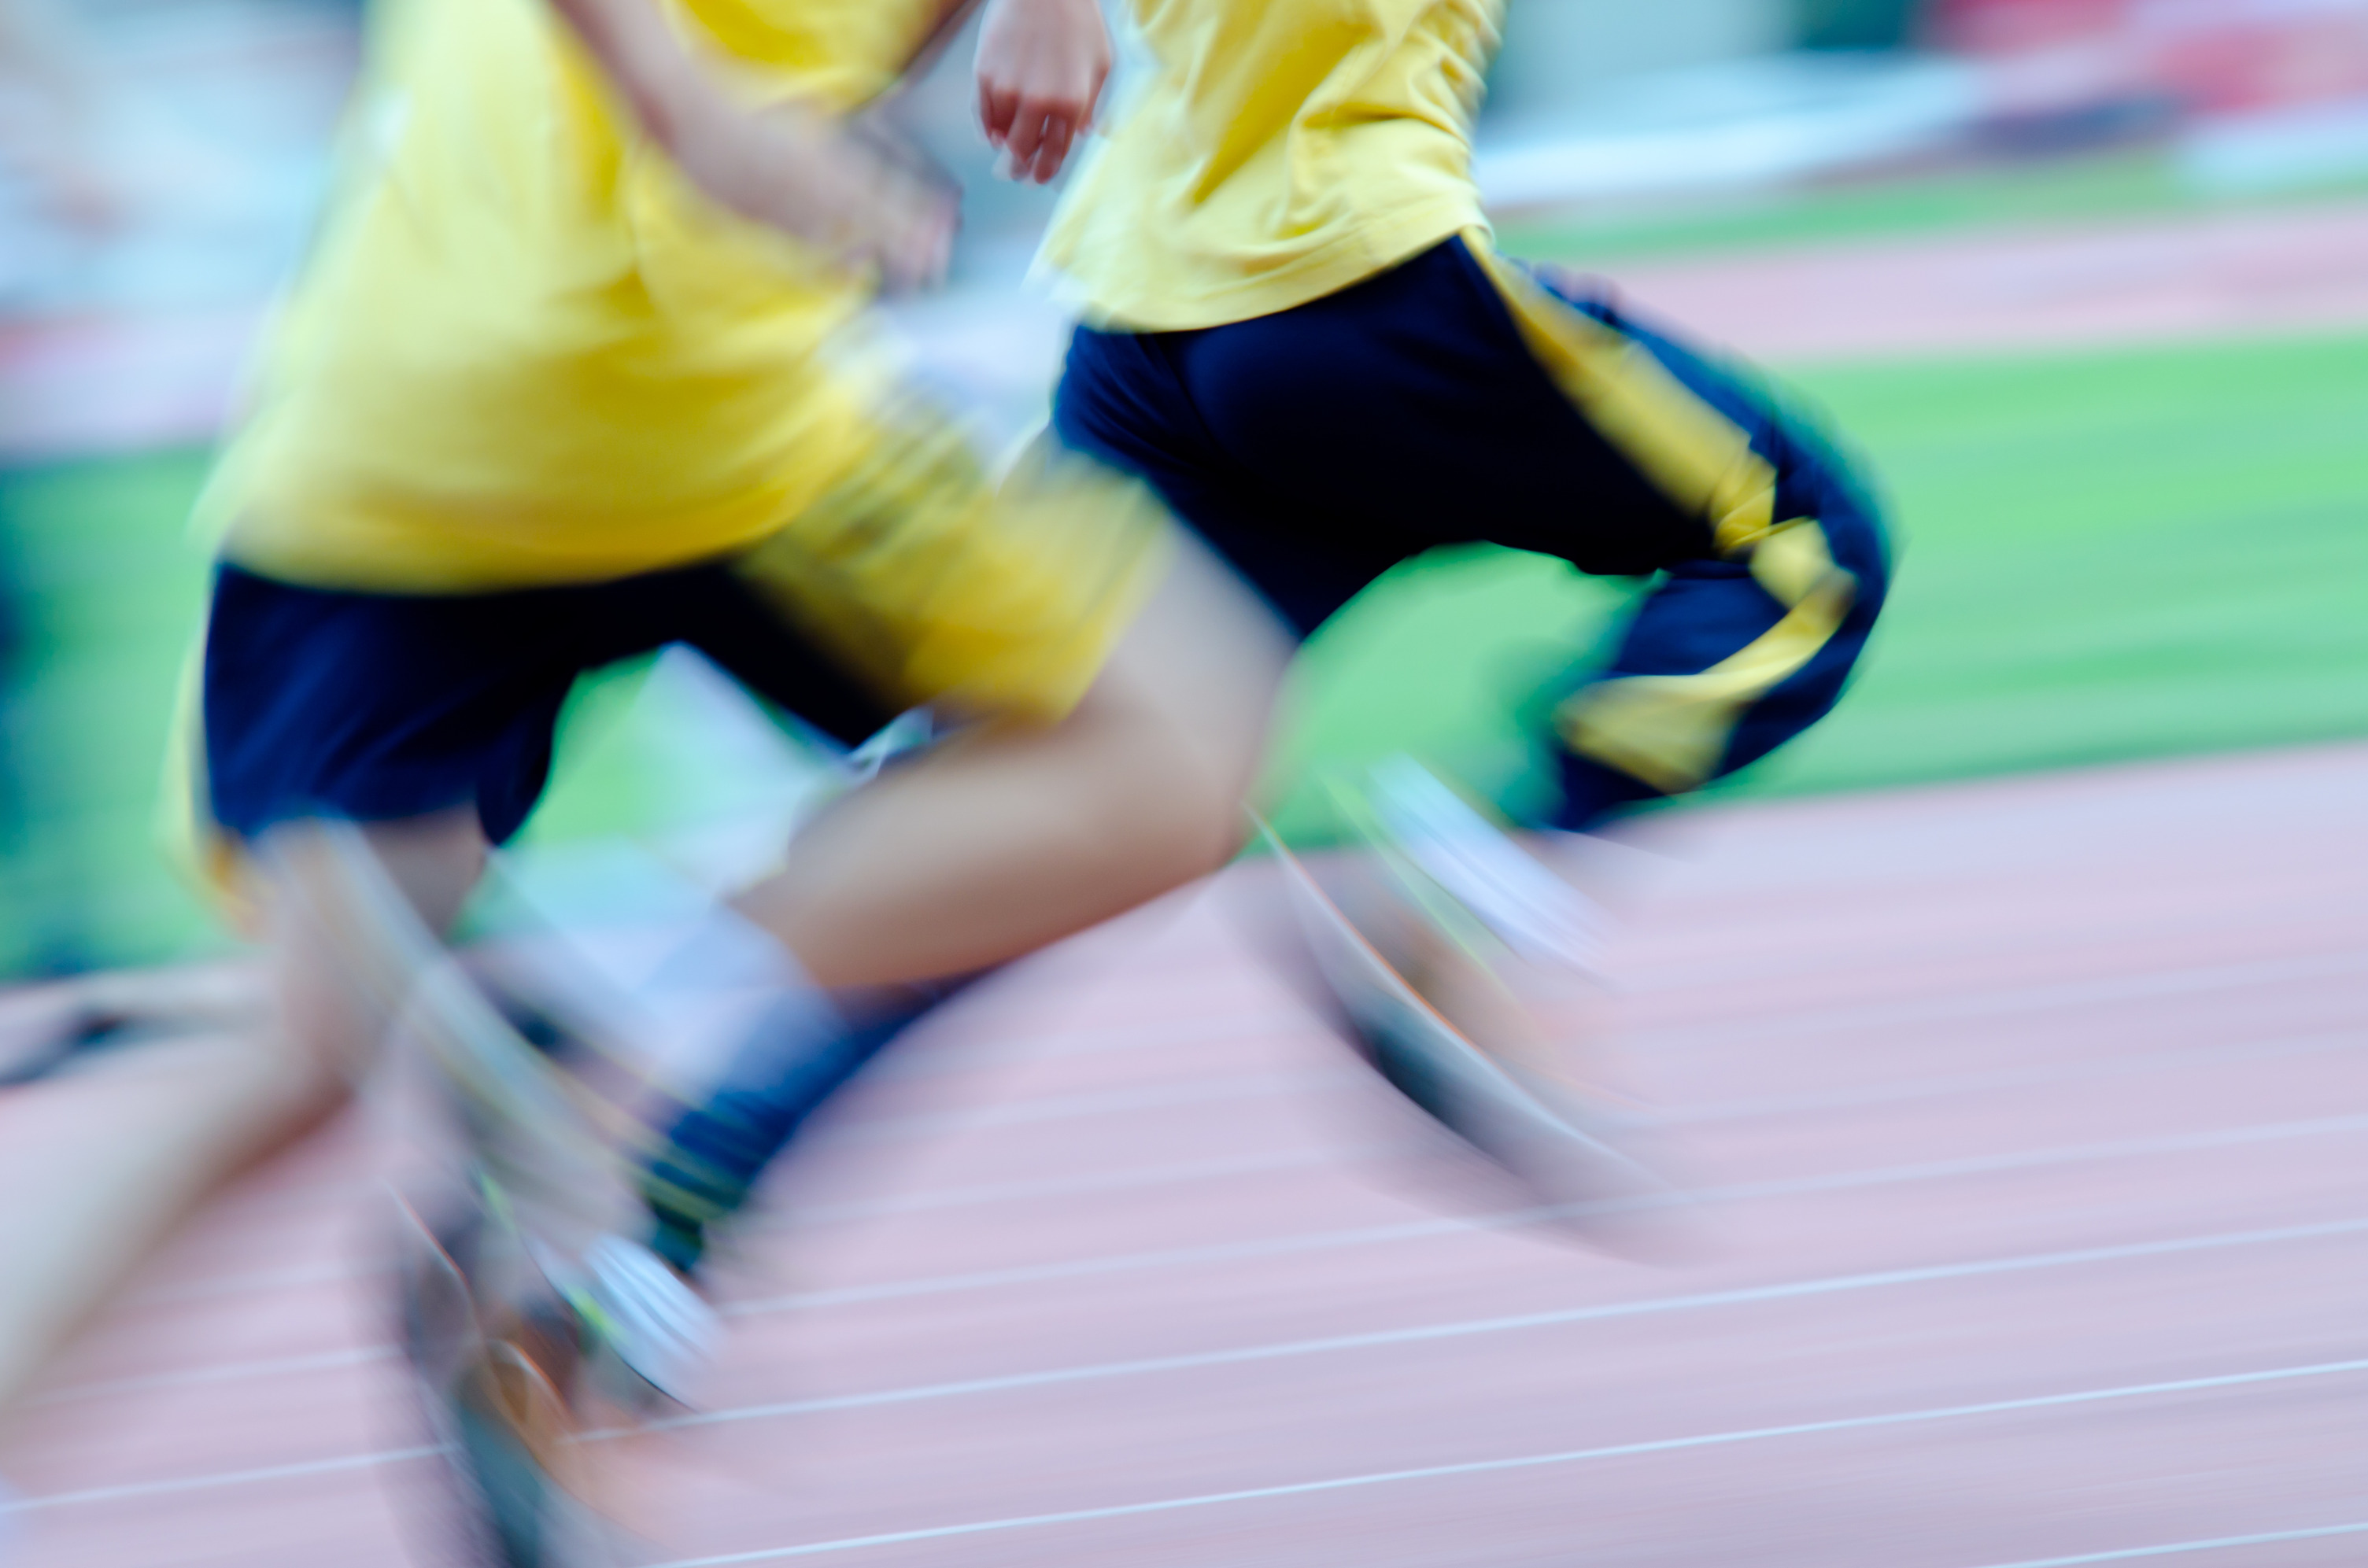 photodune-4378503-running-child-on-sport-track-blurred-motion-l